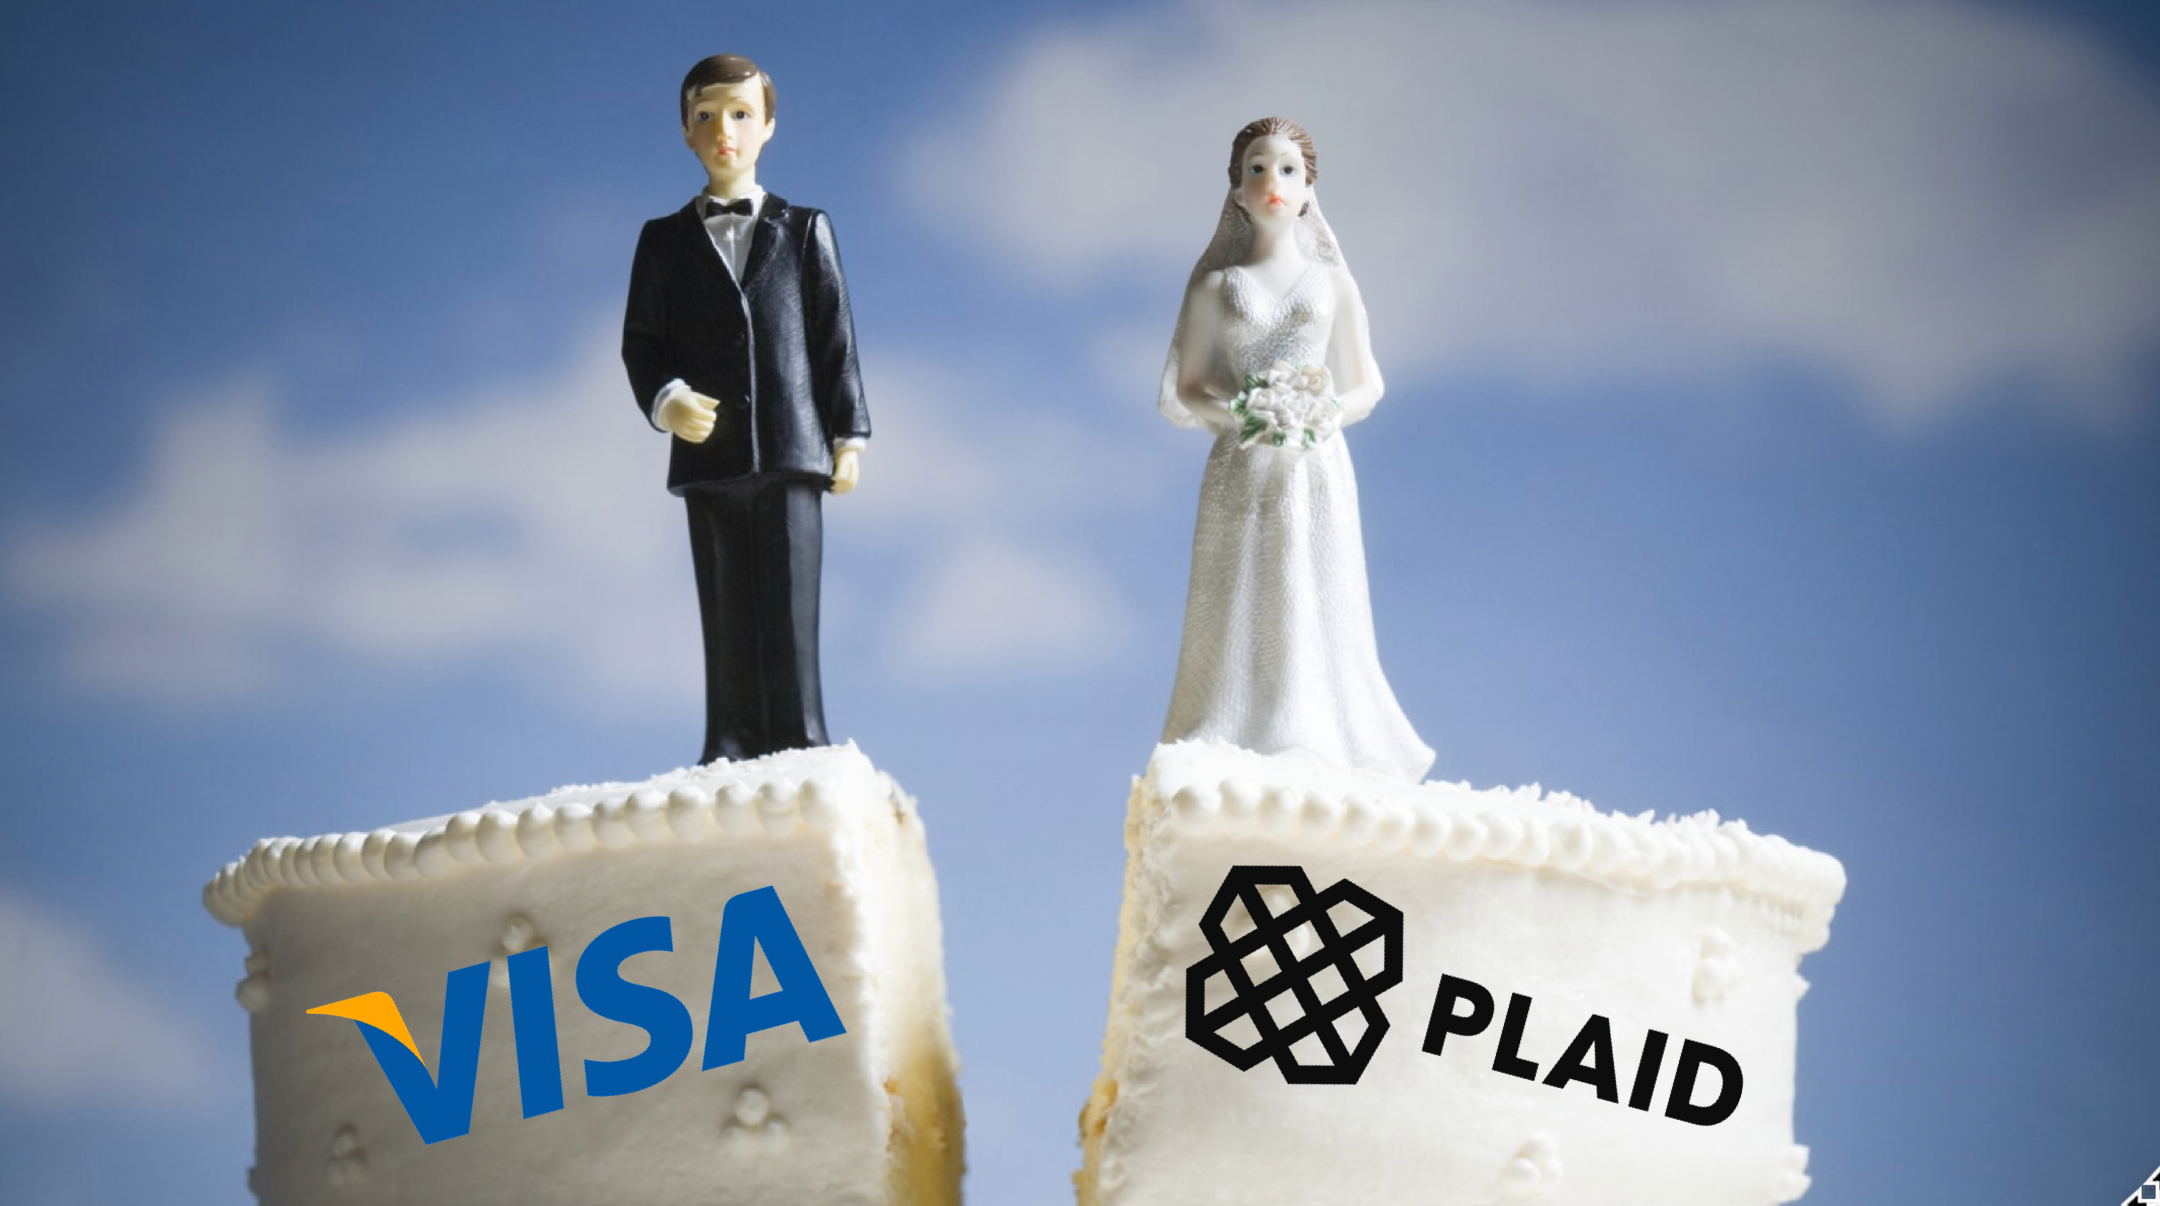 Visa + Plaid Failed Merger: The Real Threat